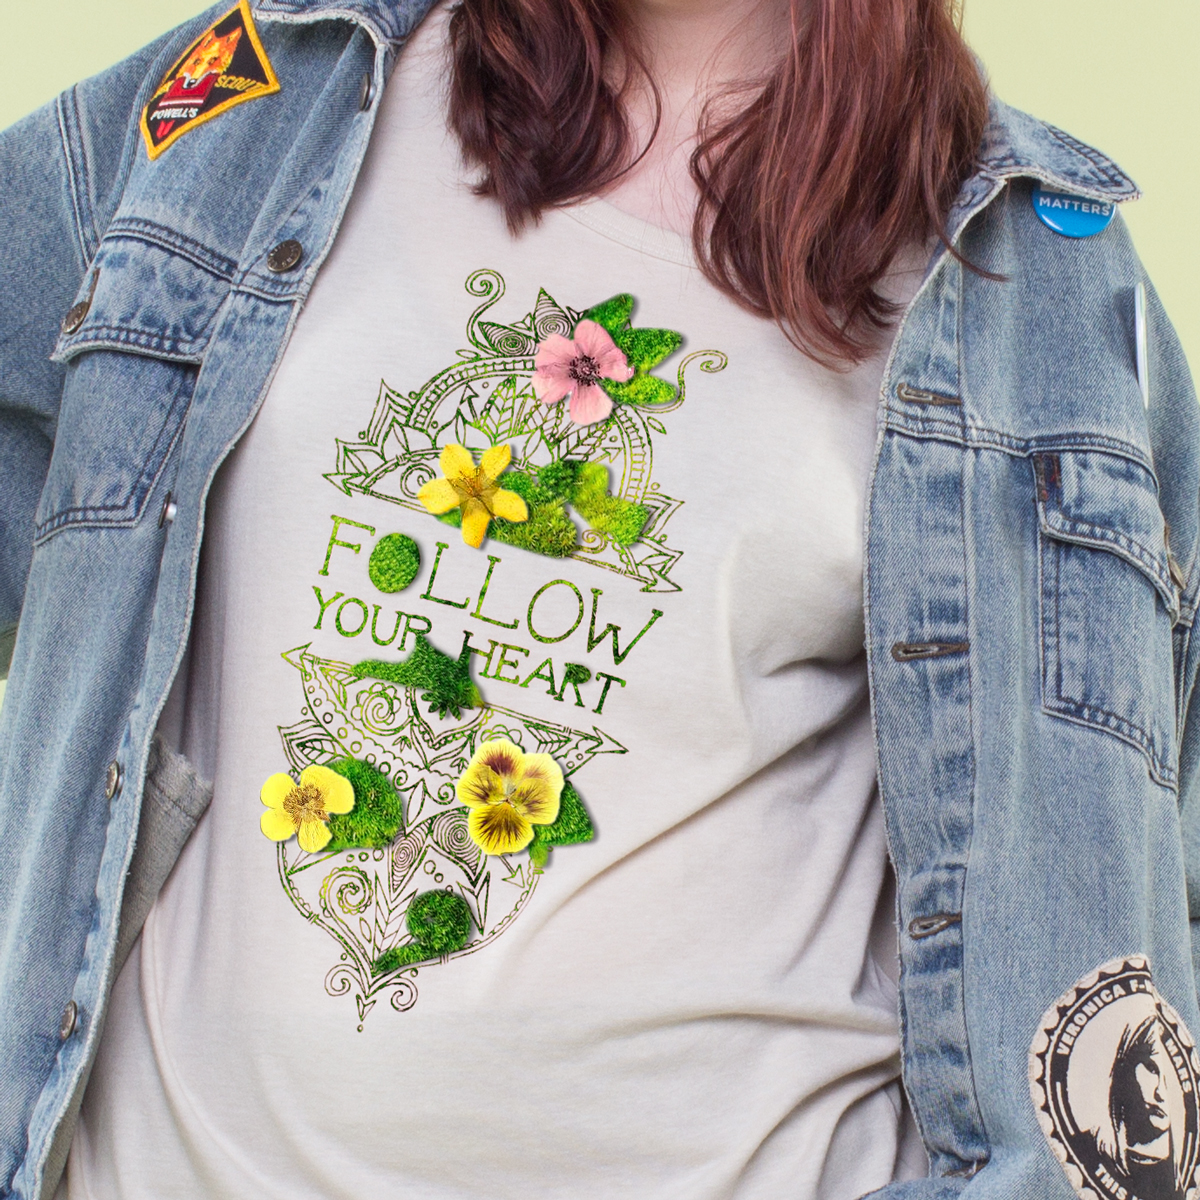 AprilFools 03 - Introducing: Flower Sprouting Tees!